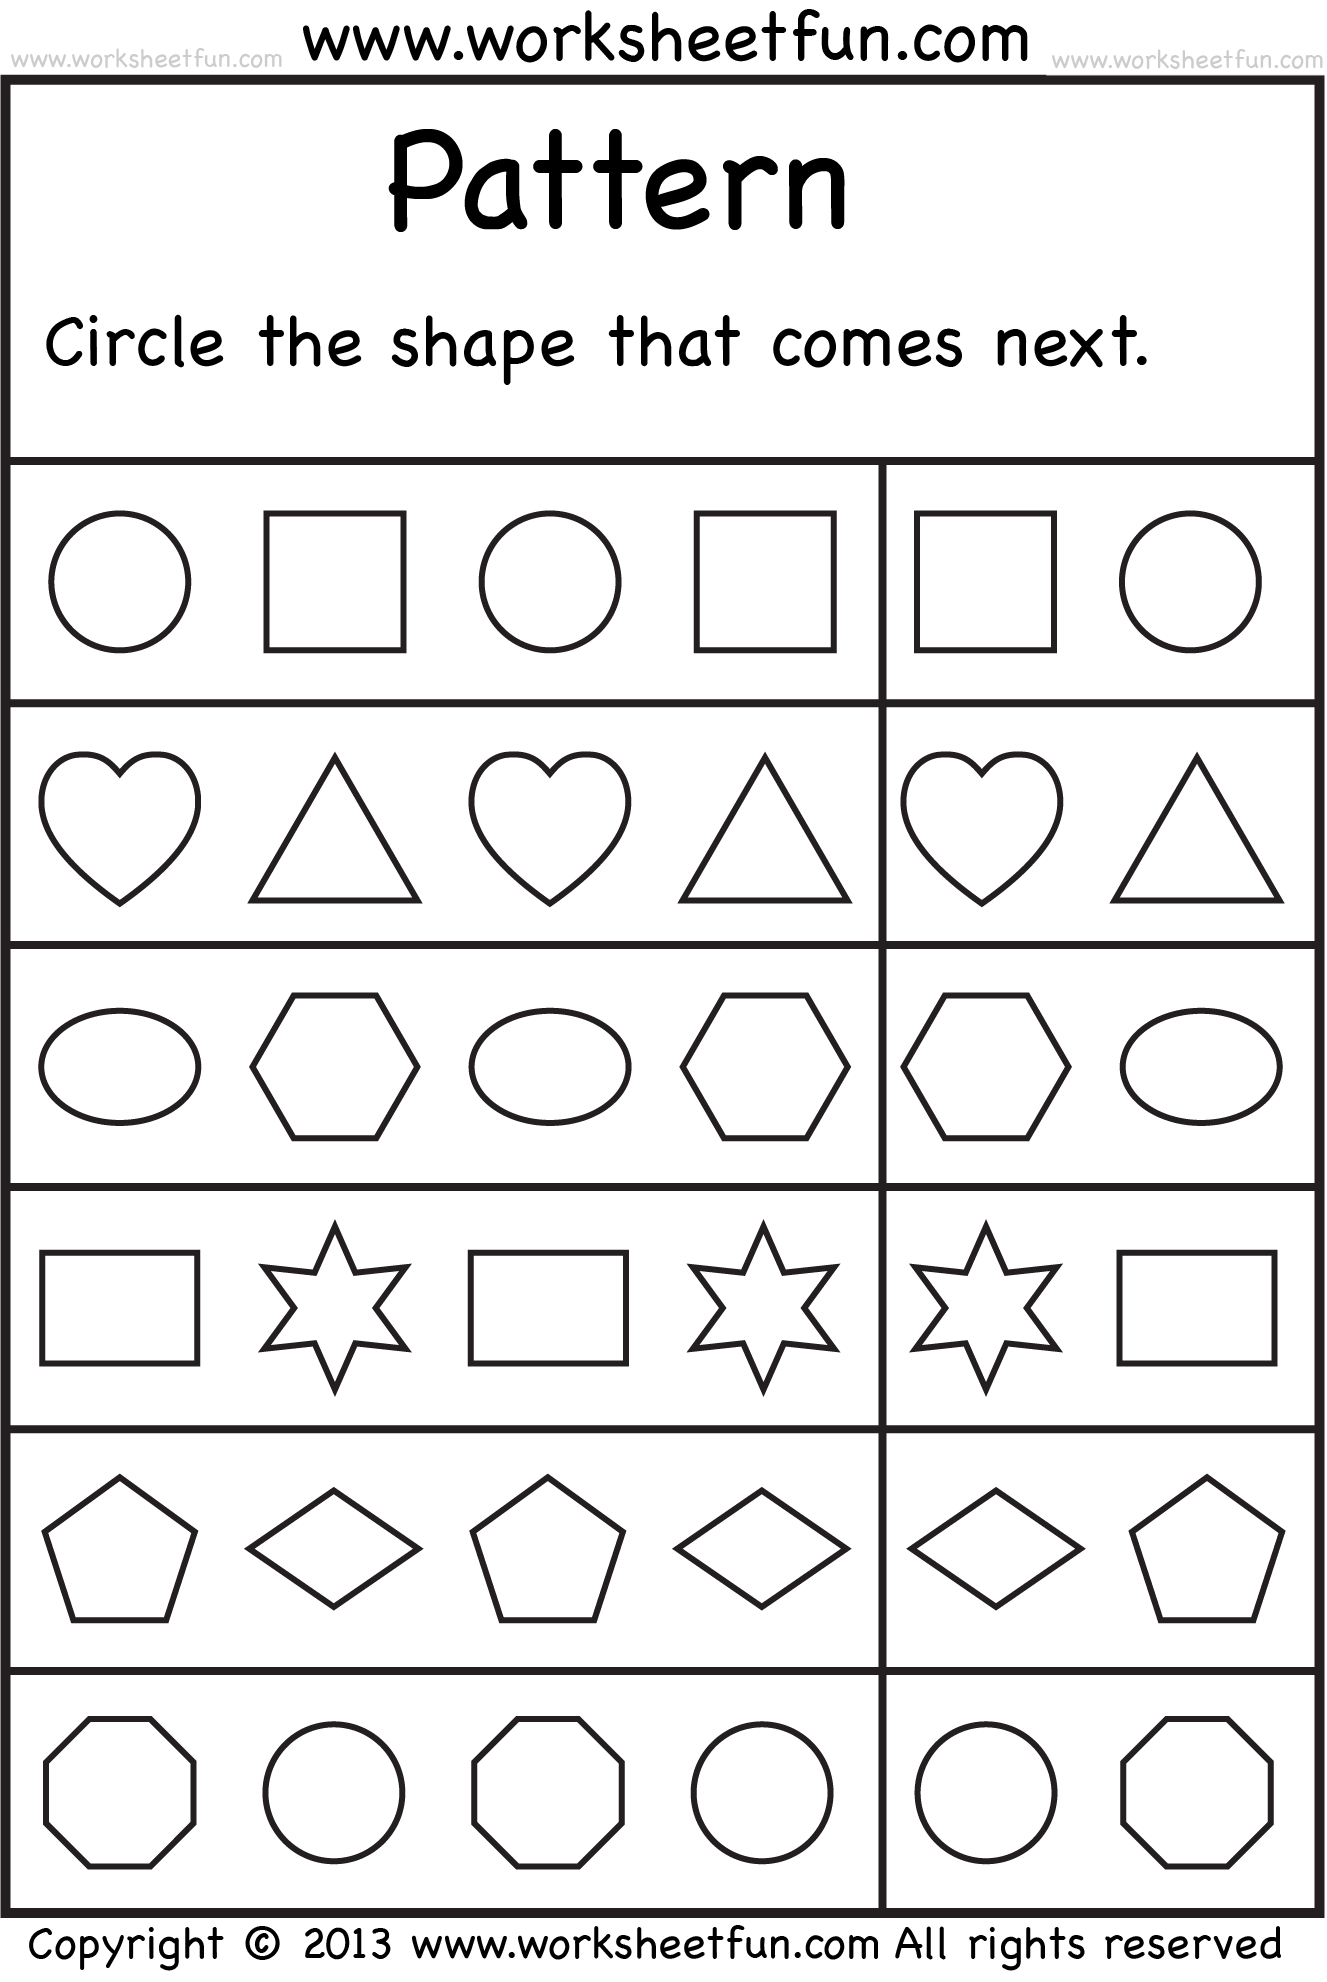 Weirdmailus  Wonderful  Images About School Worksheets On Pinterest  Number Words  With Excellent  Images About School Worksheets On Pinterest  Number Words Alphabet Worksheets And Free Printable Kindergarten Worksheets With Attractive Listening Skills Worksheet Also Element Or Compound Worksheet In Addition King Corn Worksheet And Free Worksheets For Th Grade As Well As Animal Coverings Worksheet Additionally Moles To Mass Worksheet From Pinterestcom With Weirdmailus  Excellent  Images About School Worksheets On Pinterest  Number Words  With Attractive  Images About School Worksheets On Pinterest  Number Words Alphabet Worksheets And Free Printable Kindergarten Worksheets And Wonderful Listening Skills Worksheet Also Element Or Compound Worksheet In Addition King Corn Worksheet From Pinterestcom